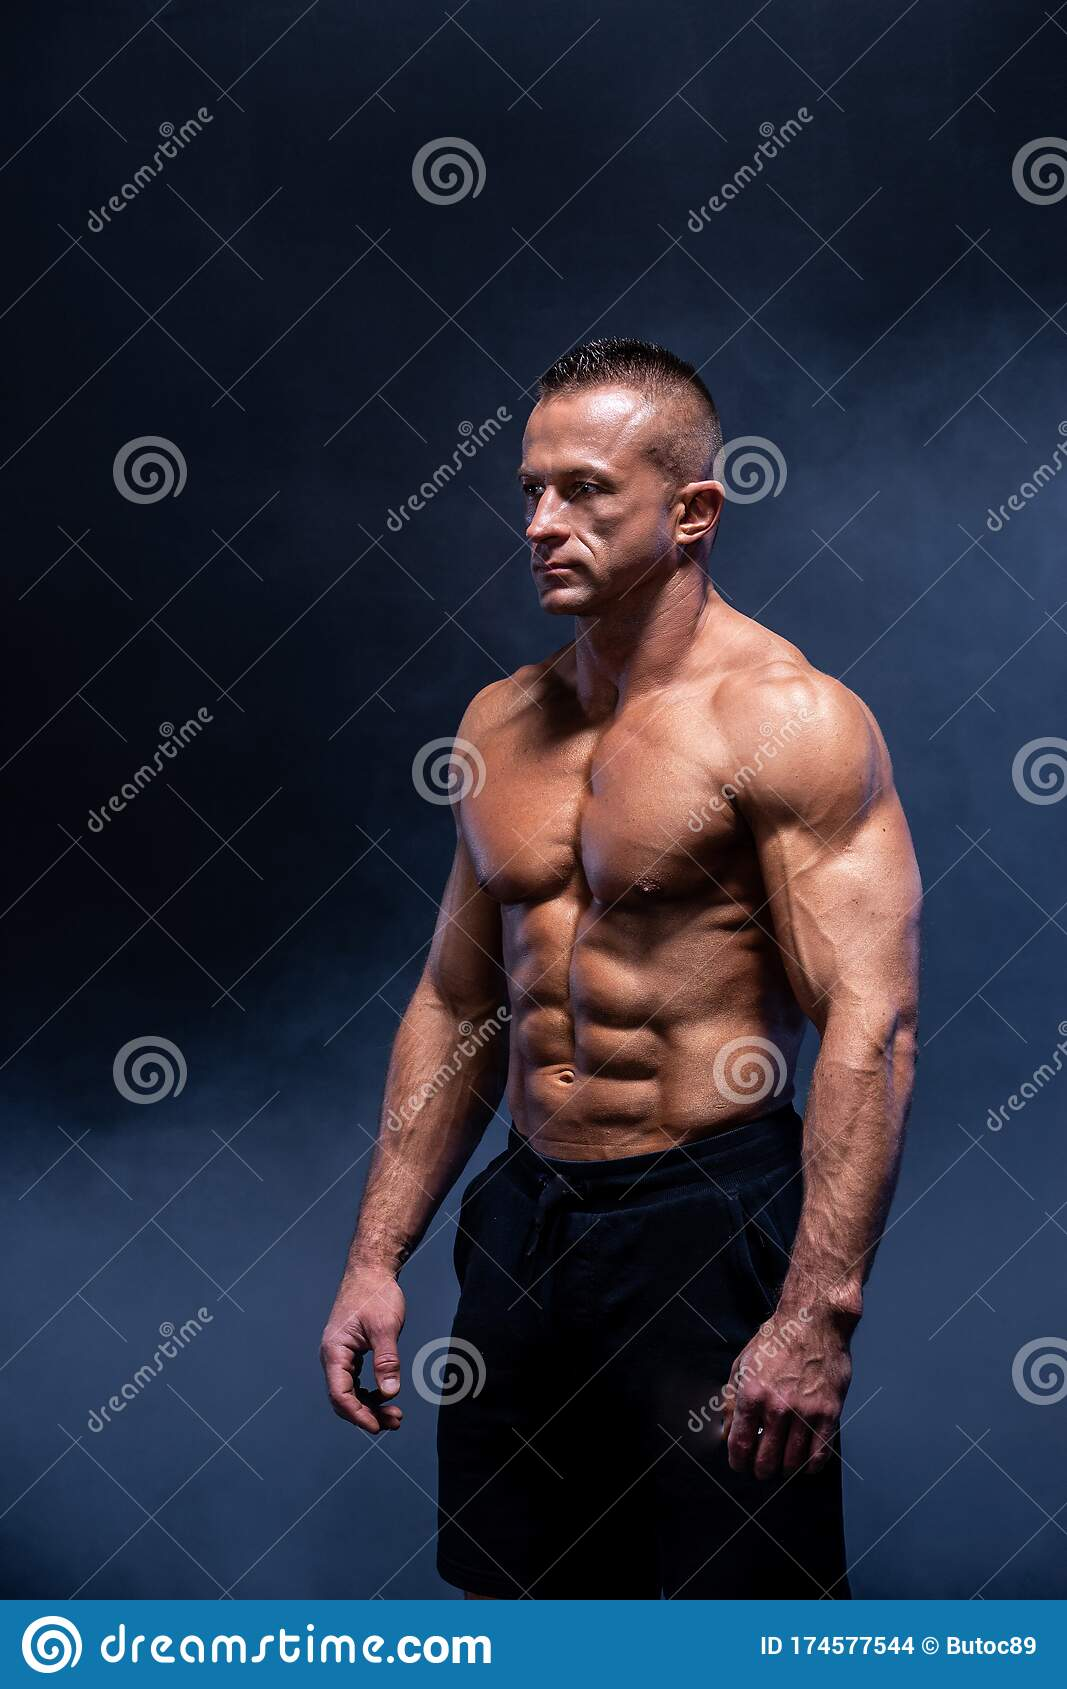 Muscular Man Isolated On The Black Background. Strong Male